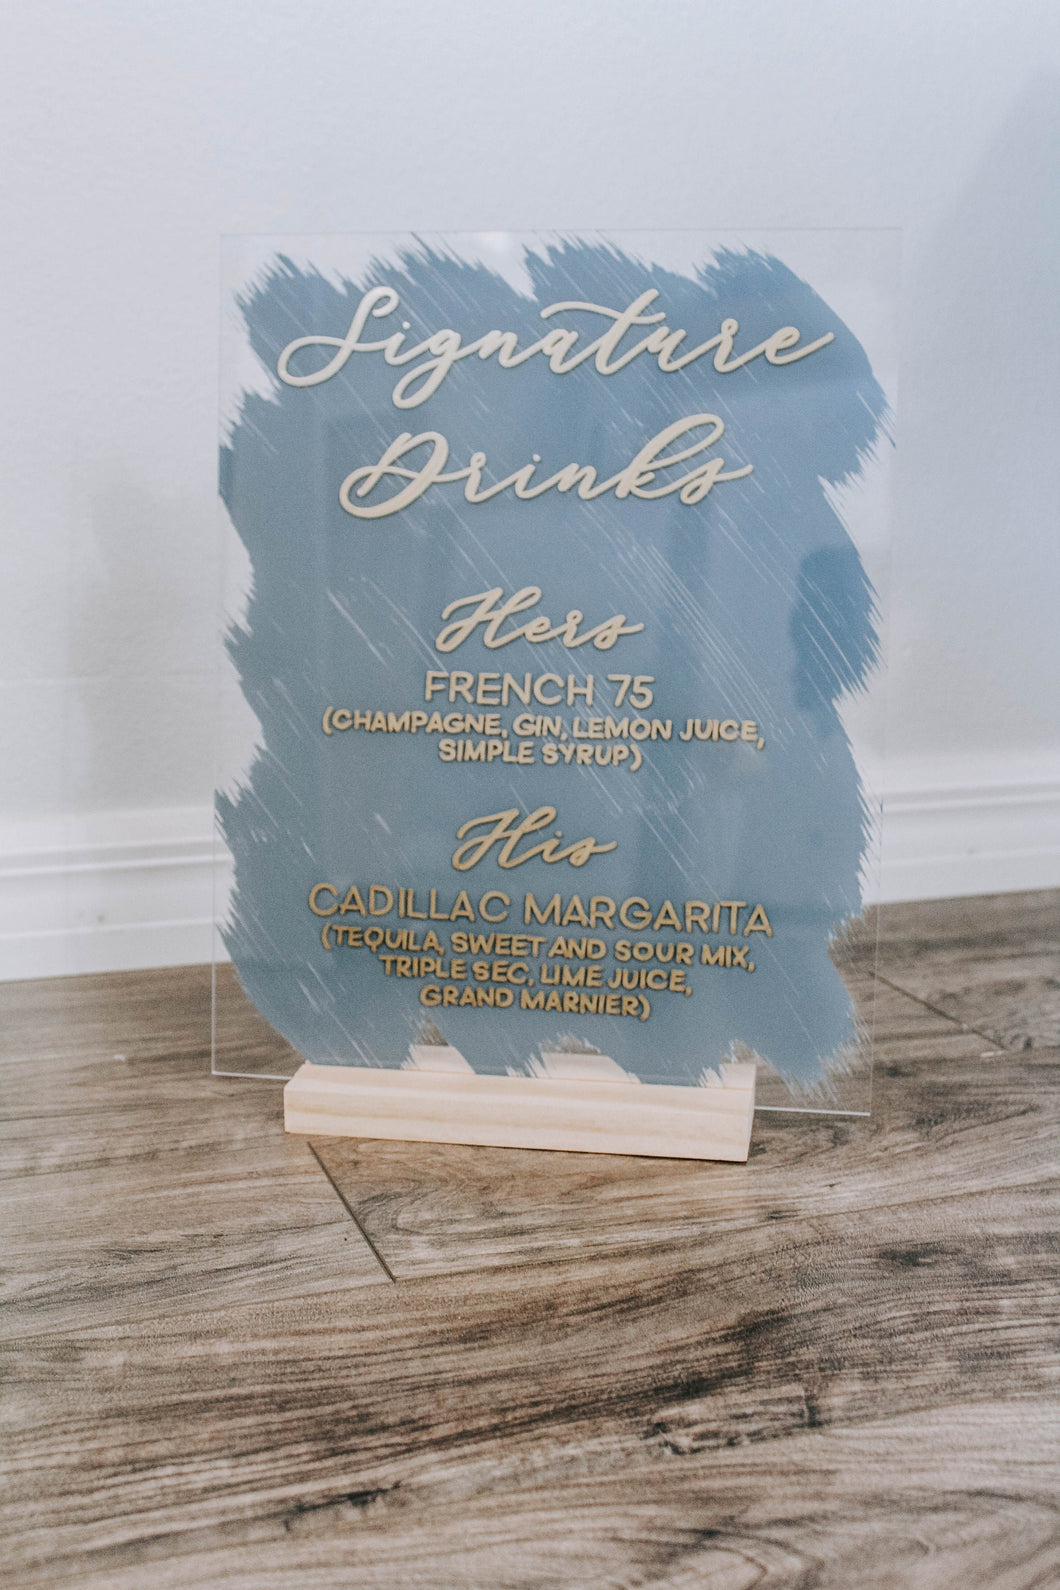 Acrylic Signature Drinks Sign